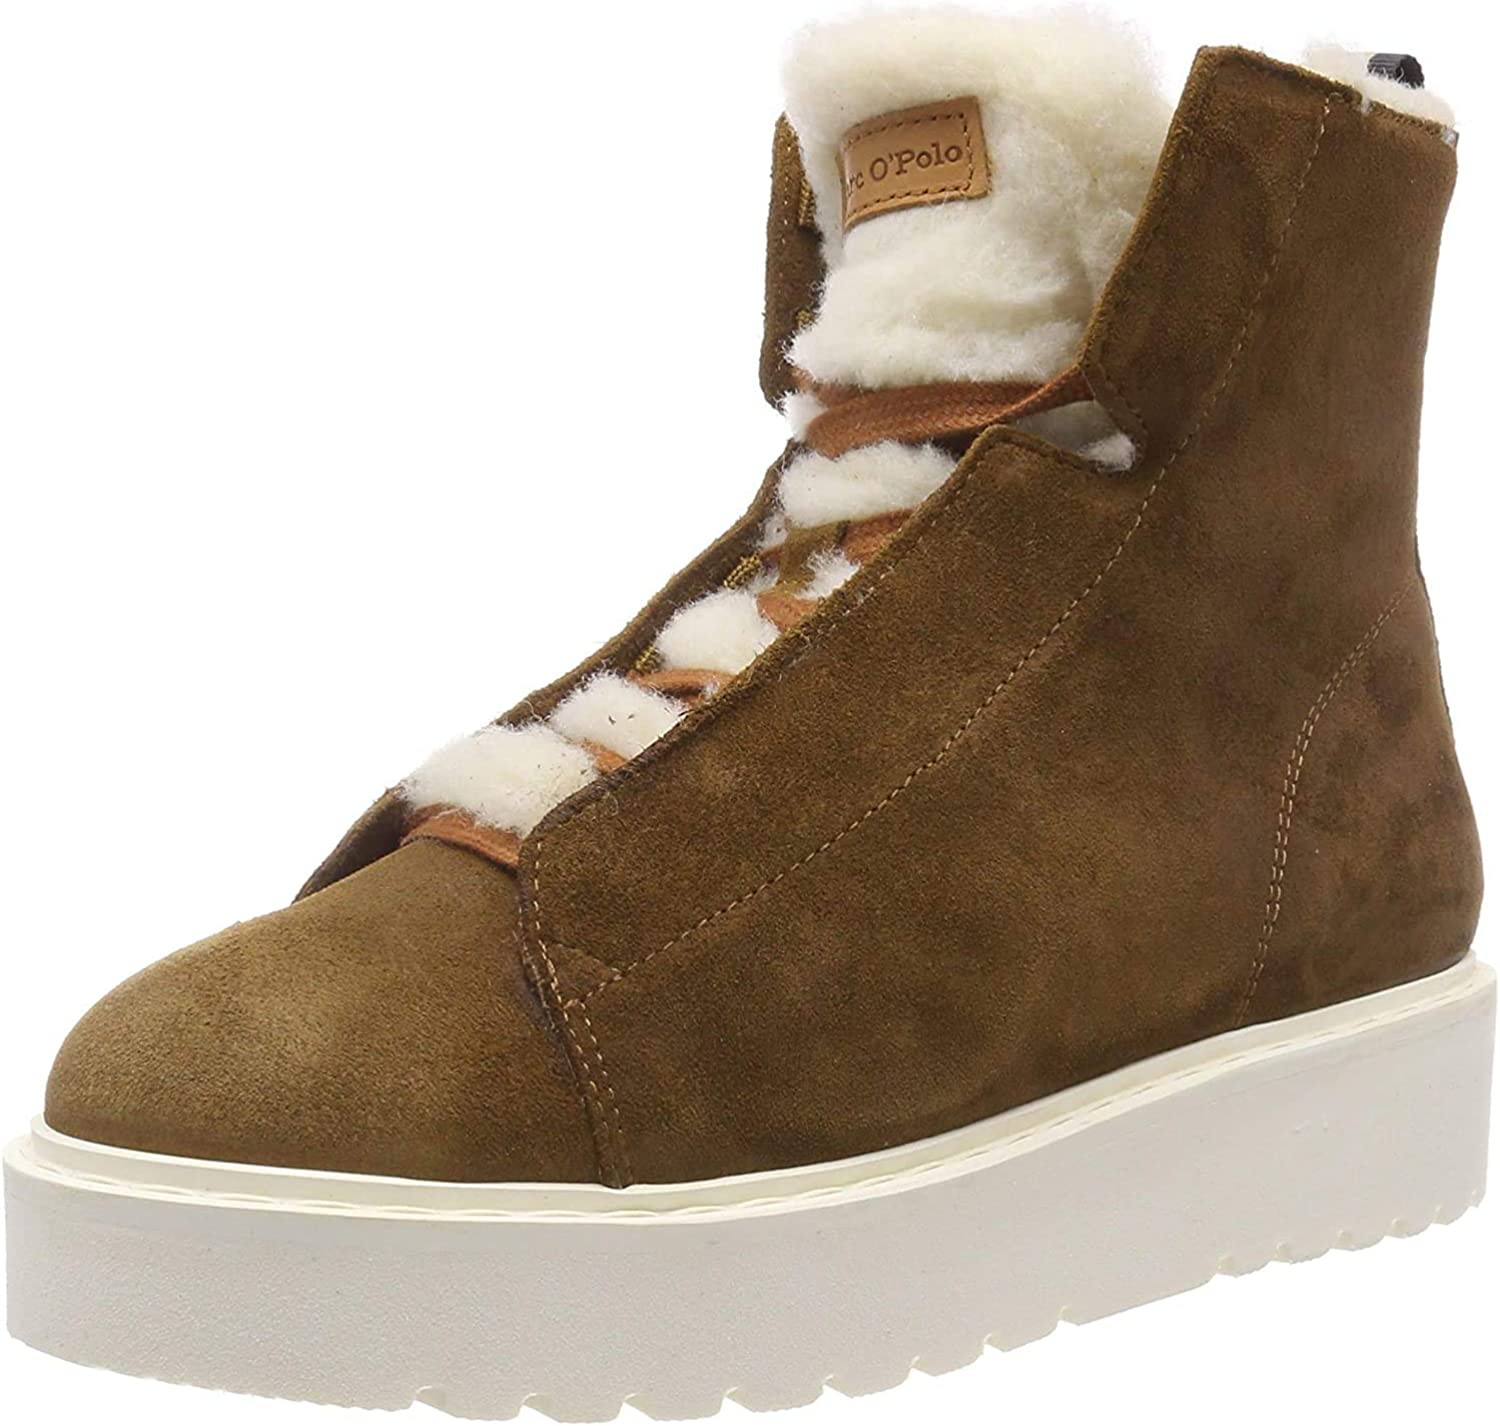 Marc O'Polo Women's Ankle Boots